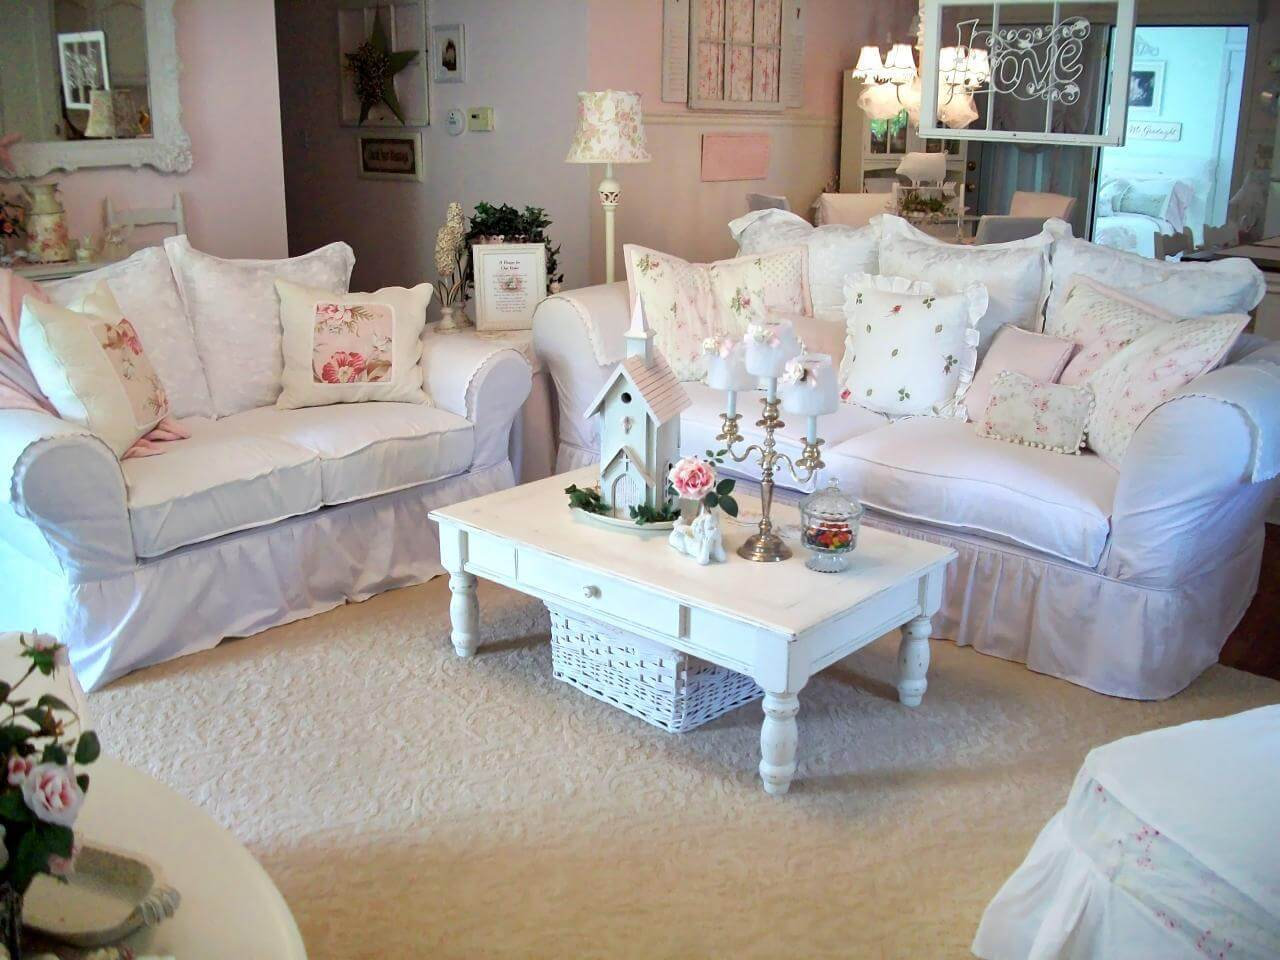 Cozy White Couches with Cushions